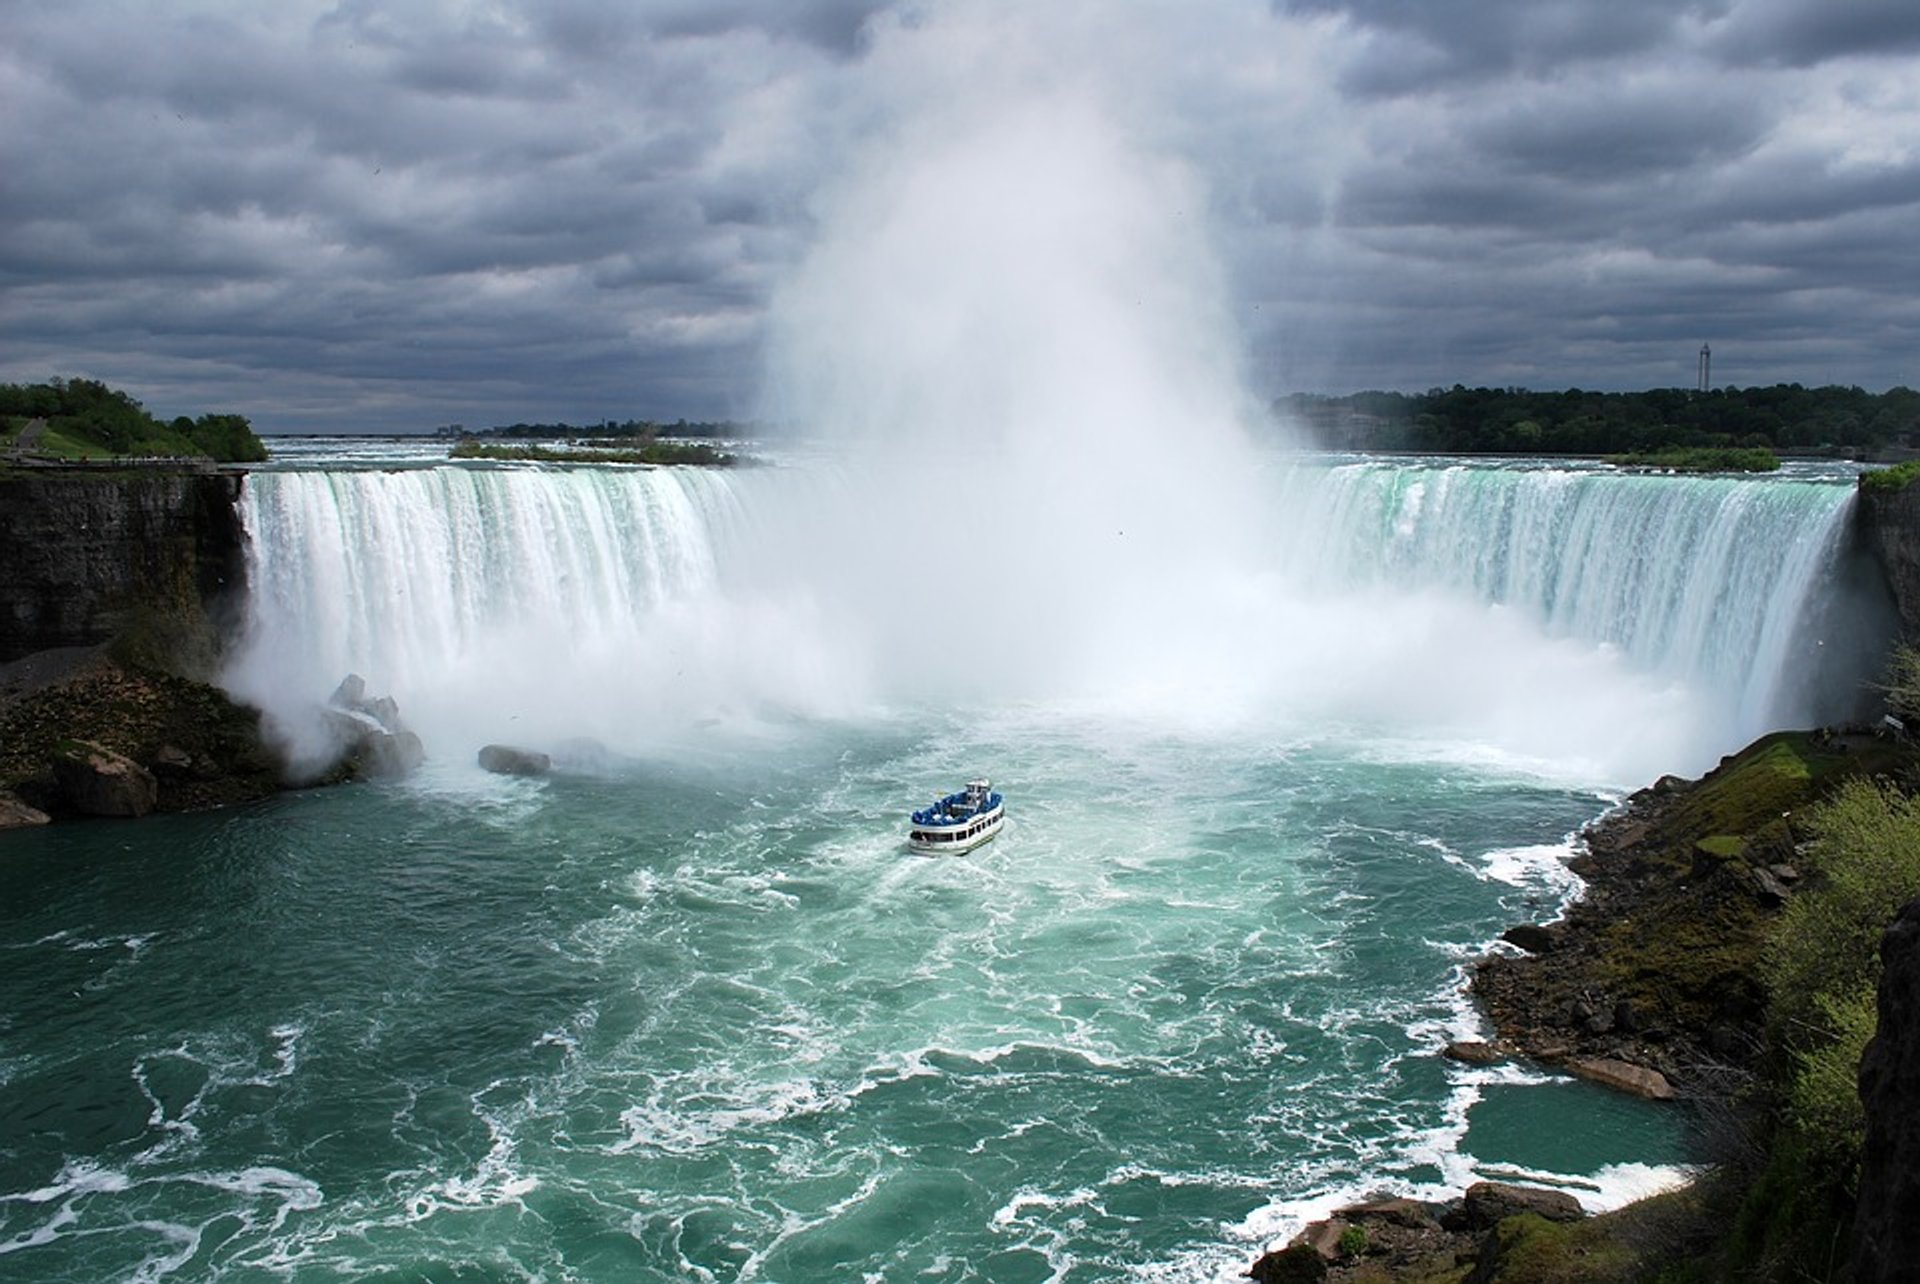 Maid of the Mist Boat Rides in Niagara Falls - Best Season